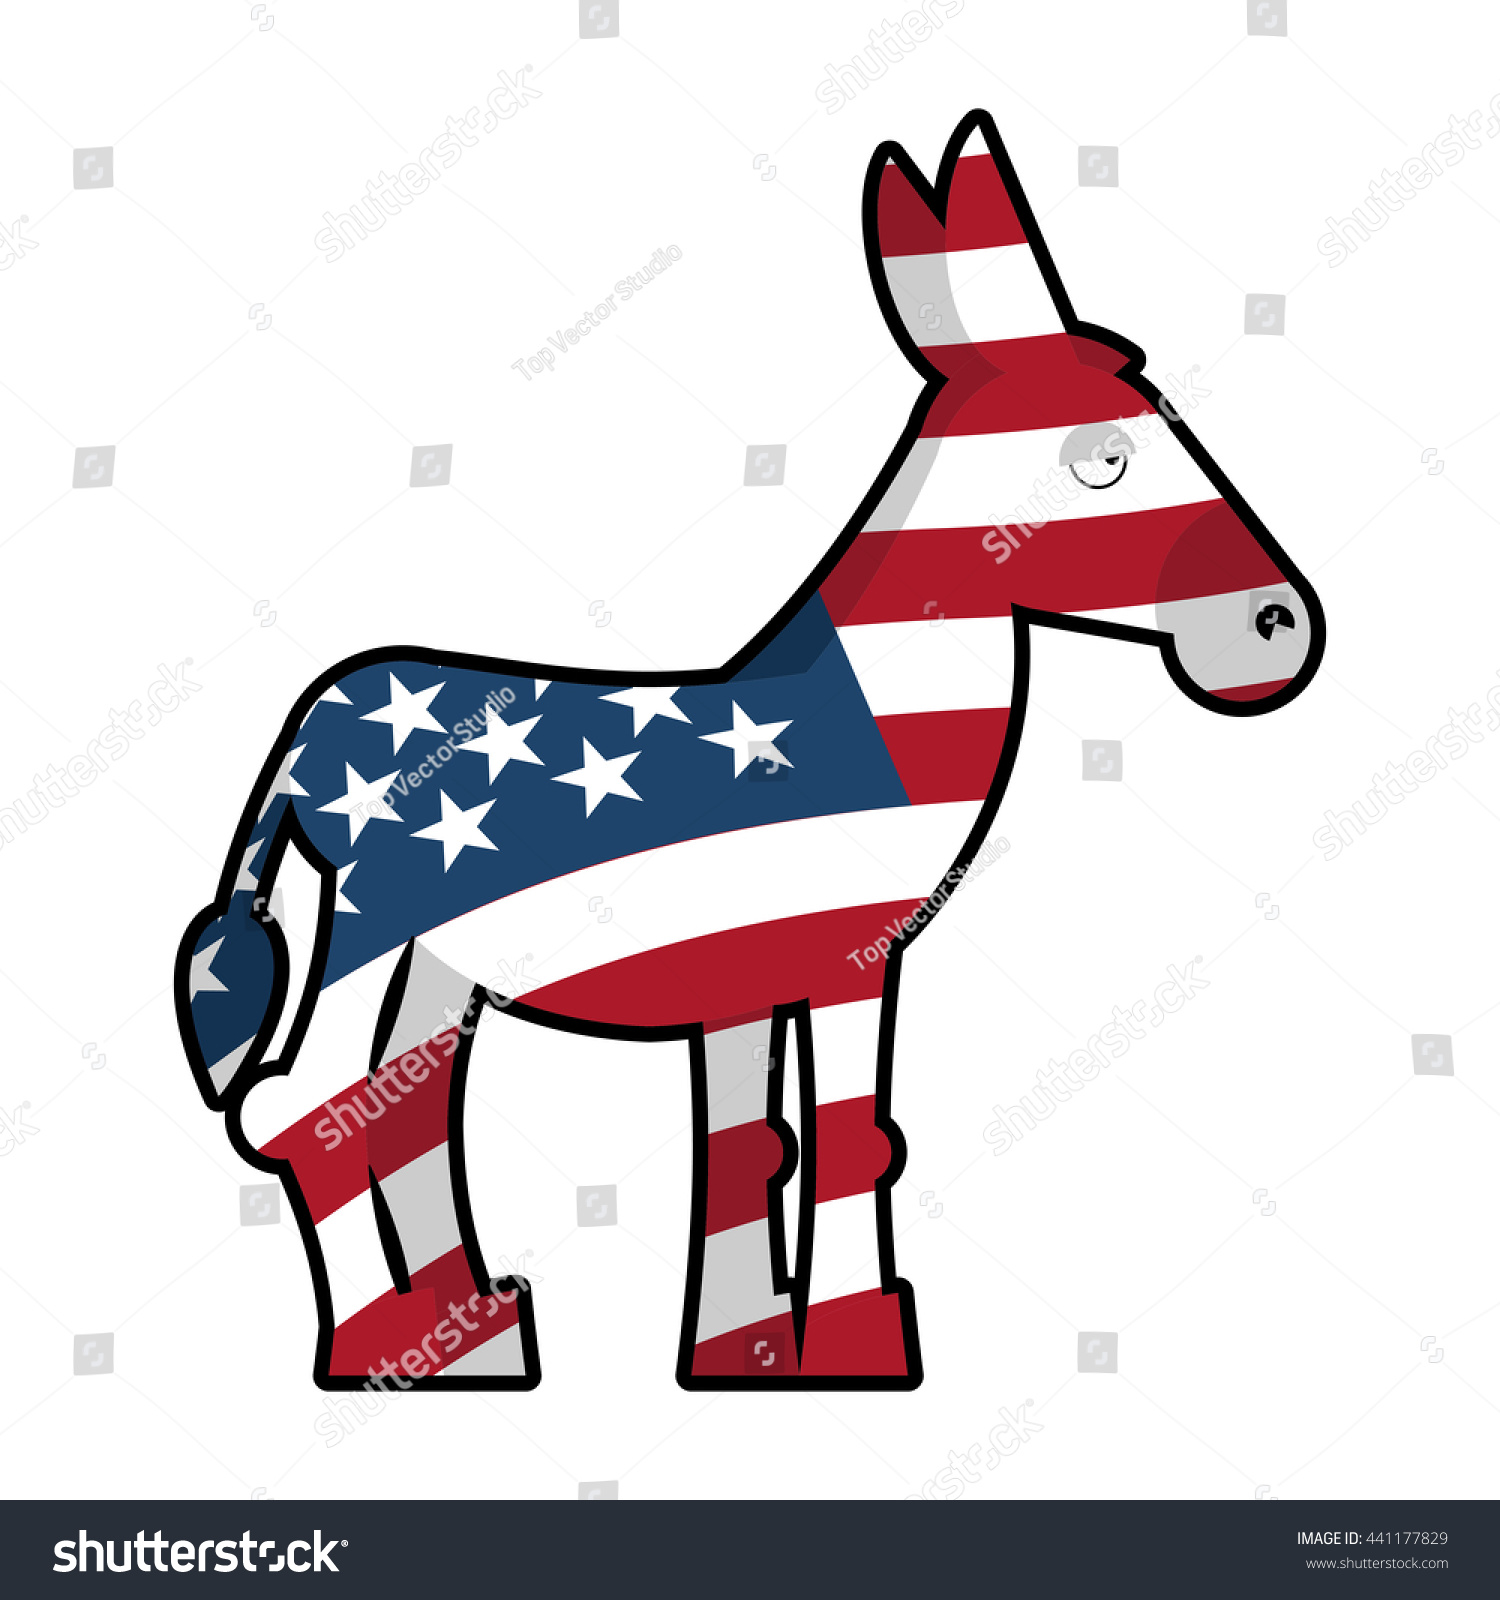 Donkey democrat symbol political party america stock illustration donkey democrat symbol of political party in america usa flag texture biocorpaavc Image collections